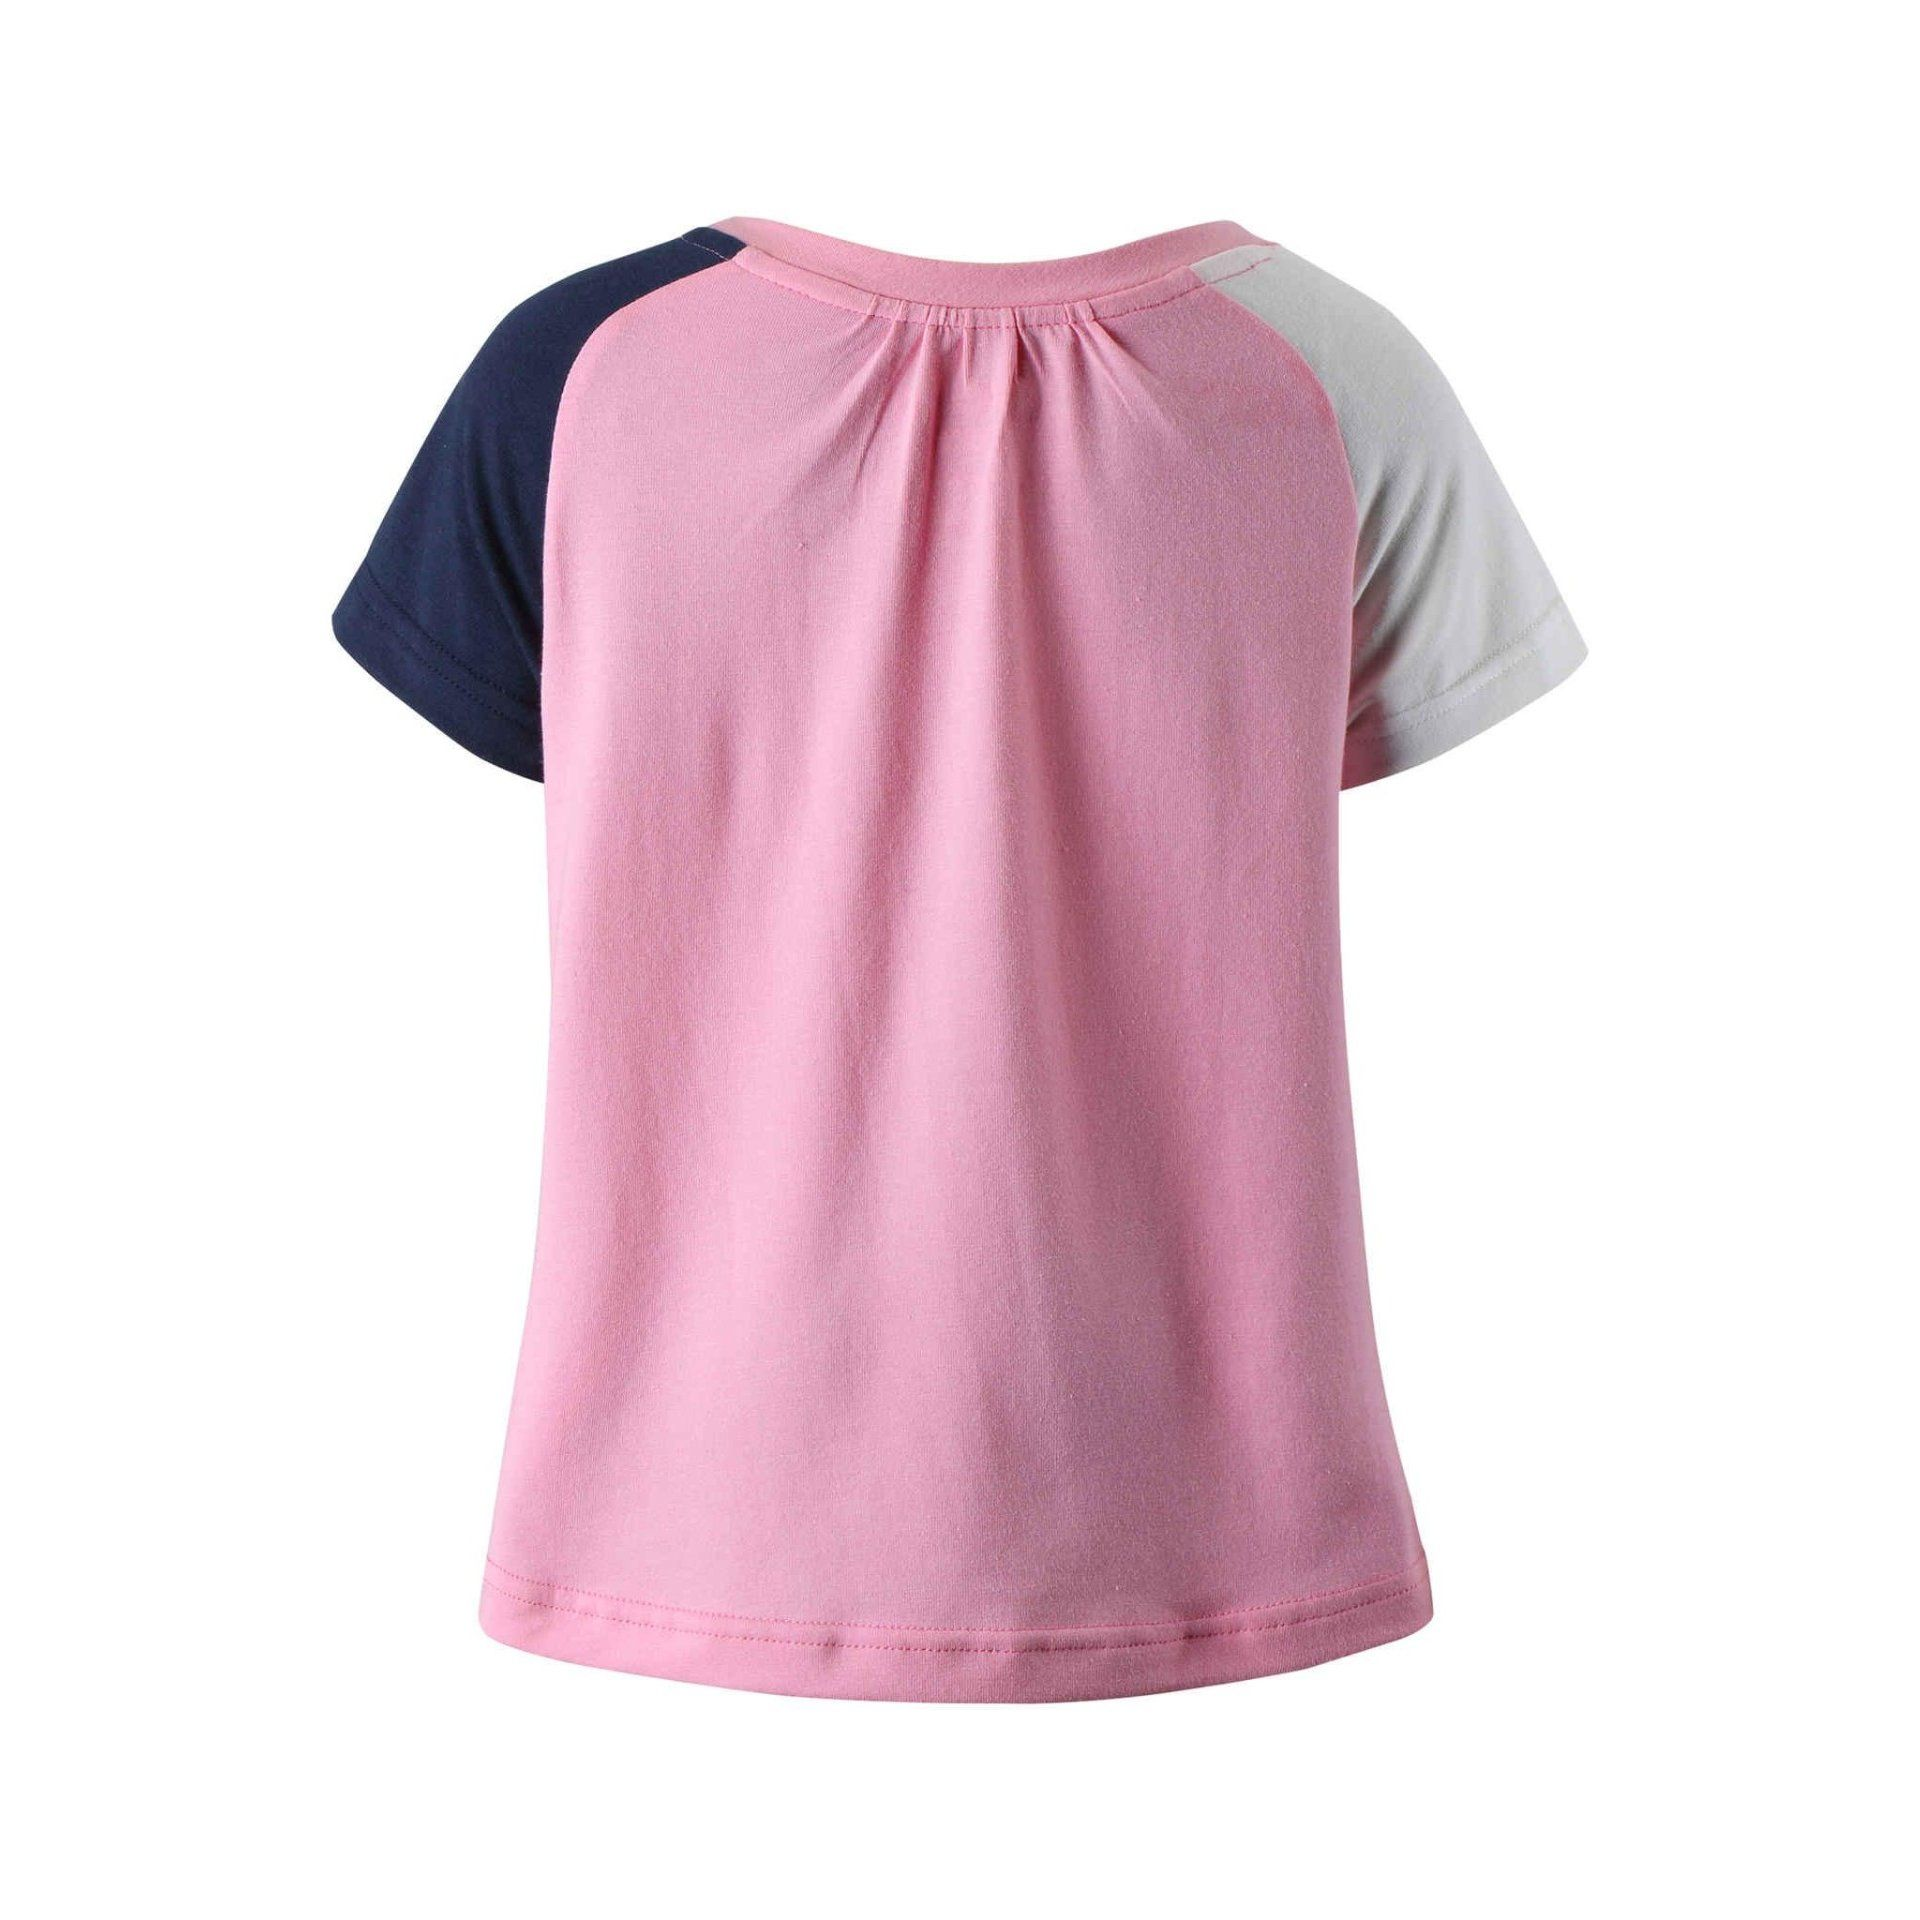 T-SHIRT REIMA WAVEFRONT 526388-4570 ROSE PINK TYŁ